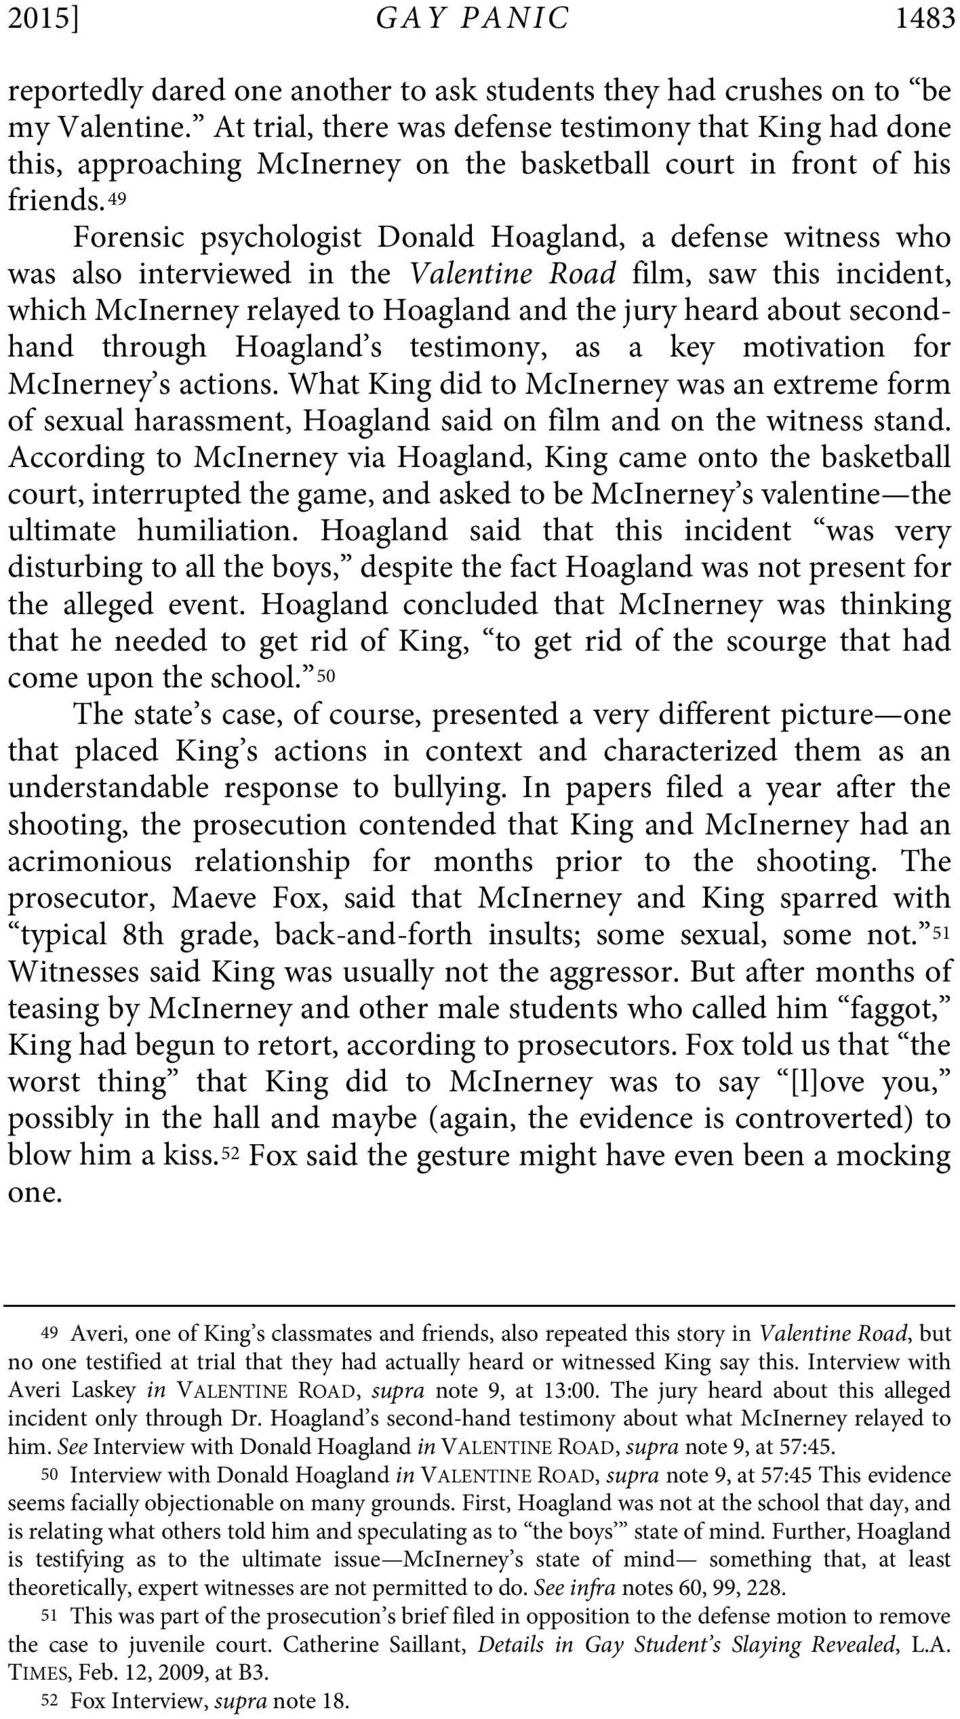 49 Forensic psychologist Donald Hoagland, a defense witness who was also interviewed in the Valentine Road film, saw this incident, which McInerney relayed to Hoagland and the jury heard about